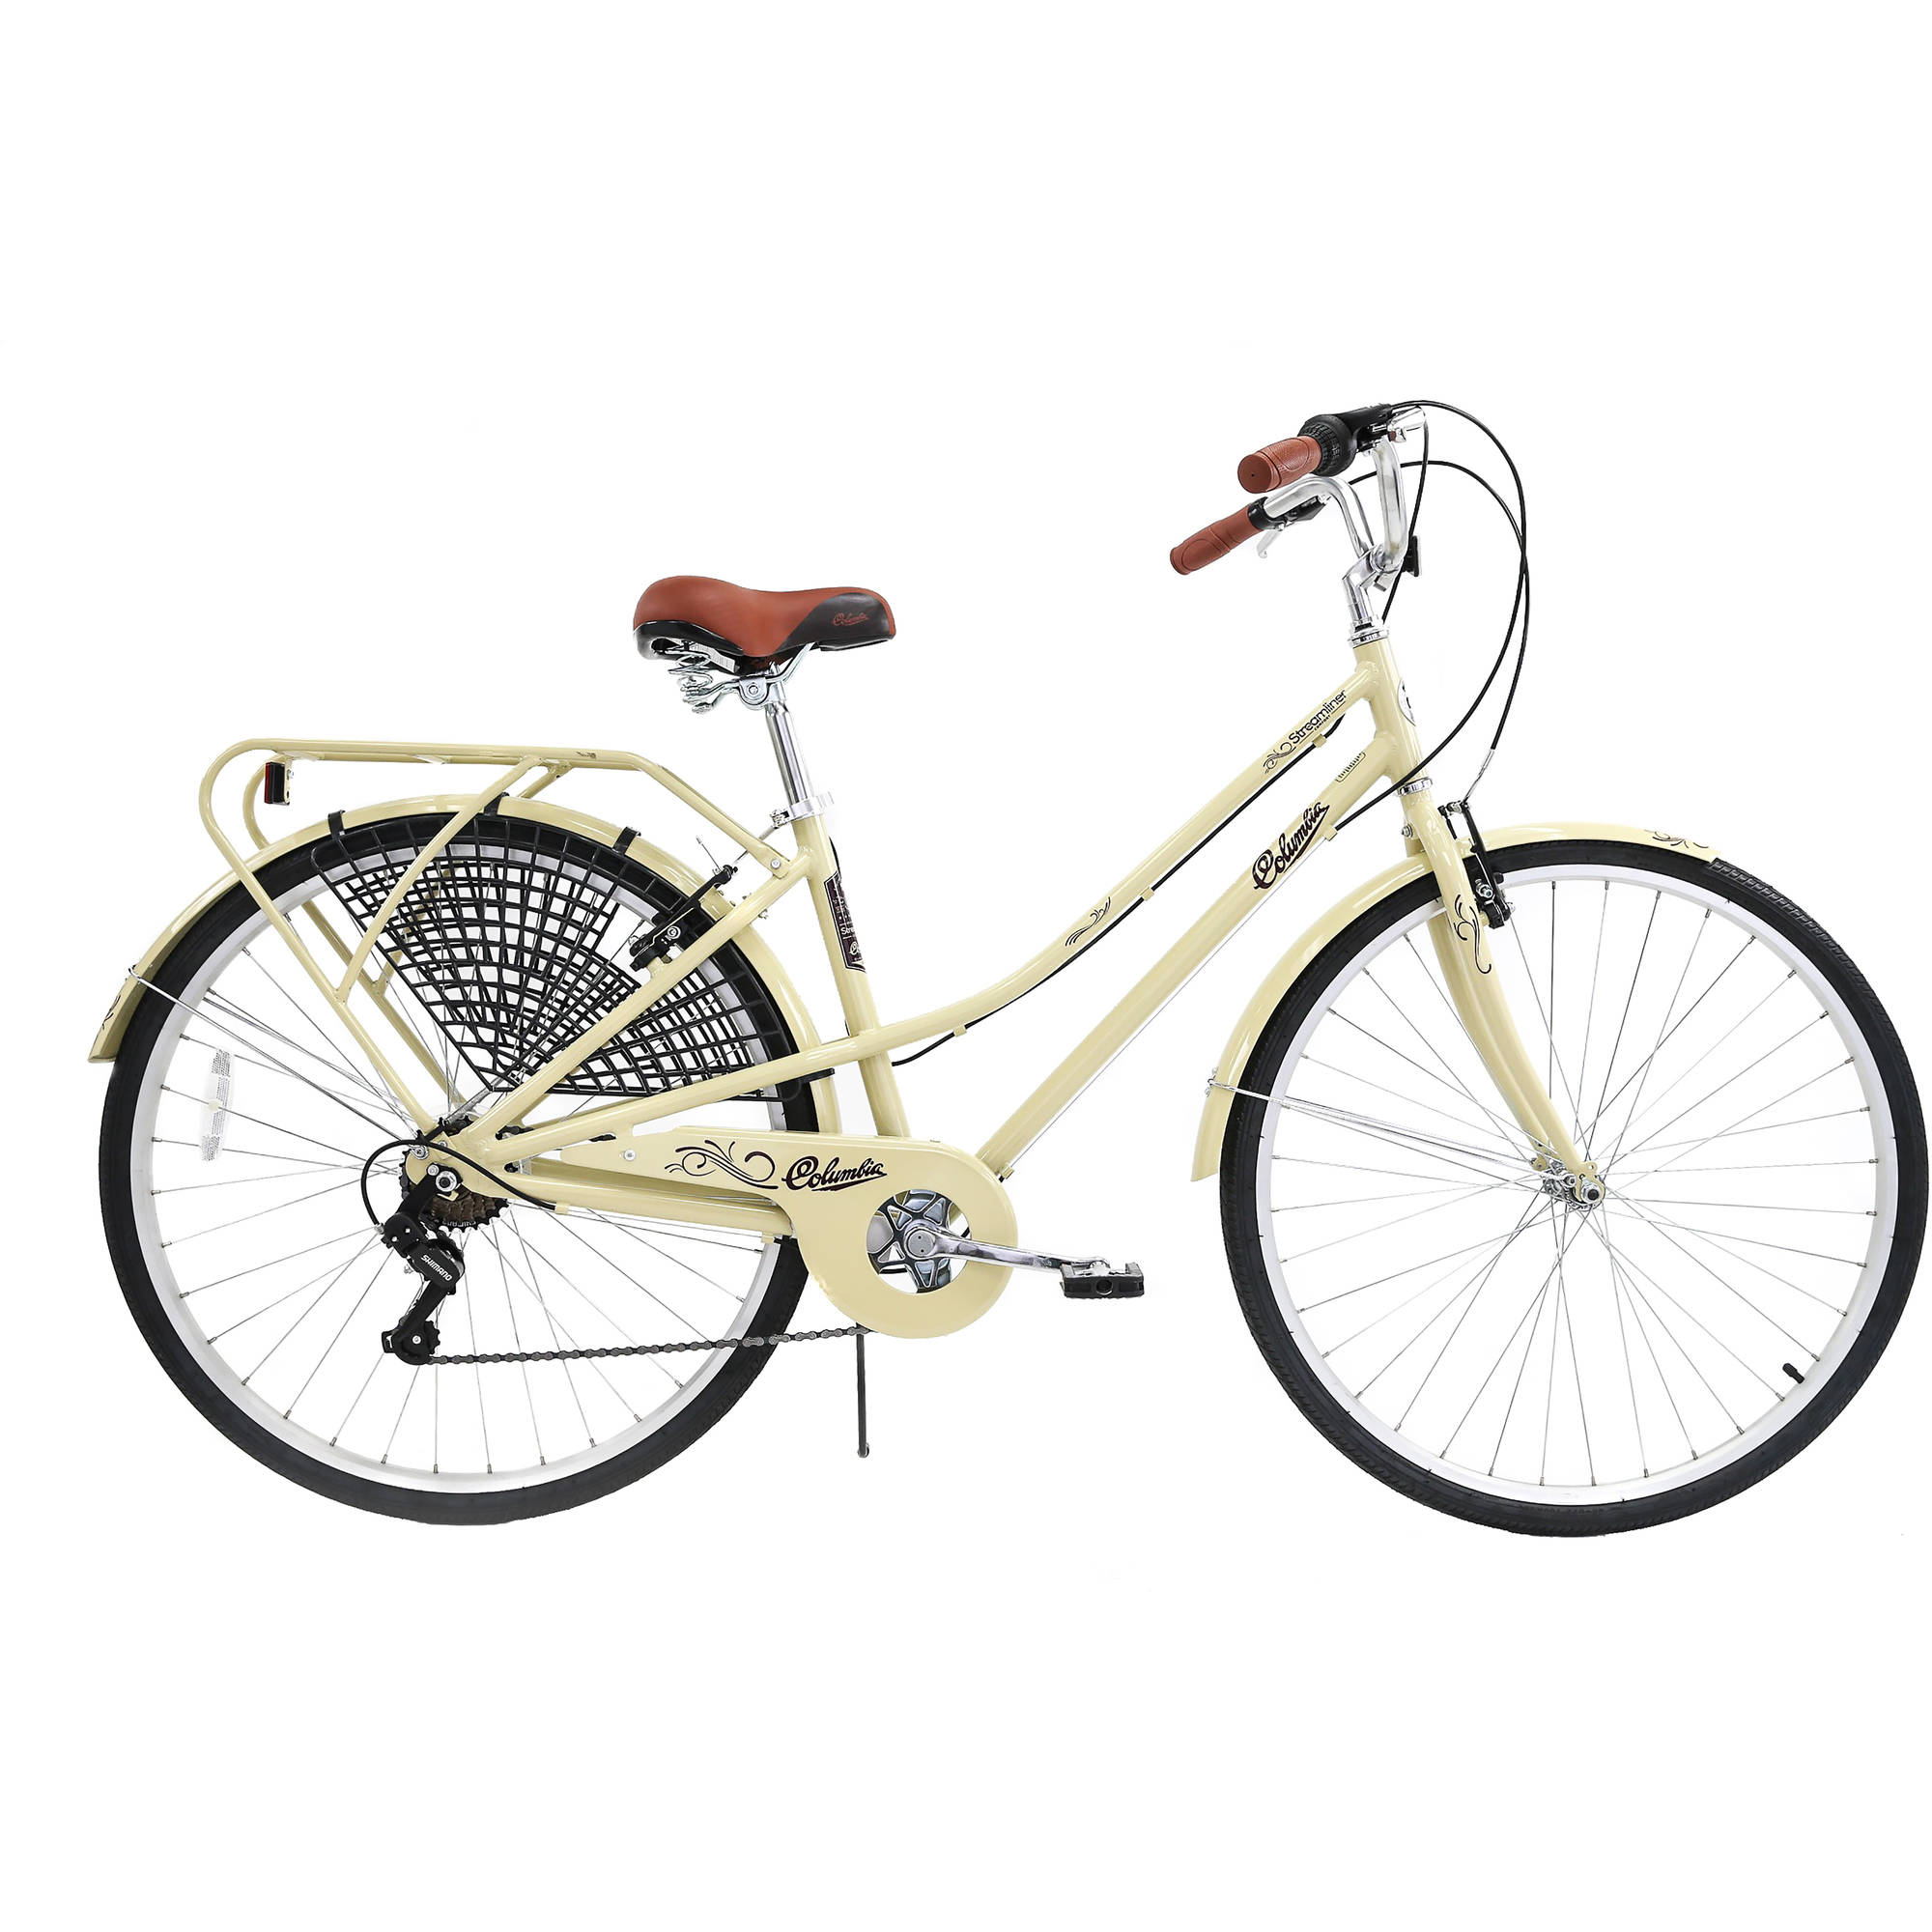 700C Columbia Streamliner7 Women's Bike